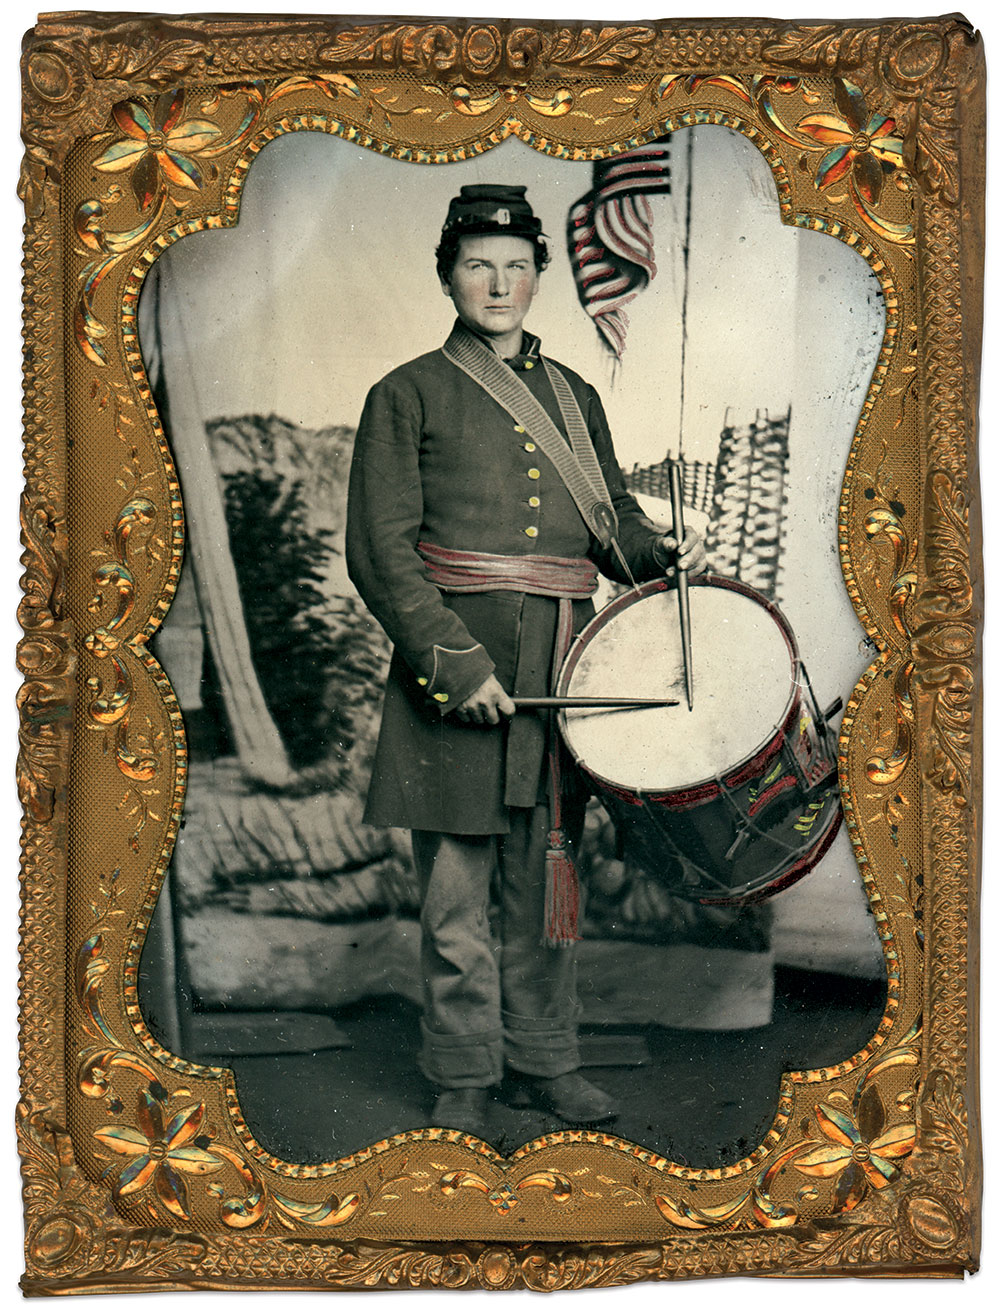 Quarter-plate tintype by an unidentified photographer. Brian Boeve Collection.